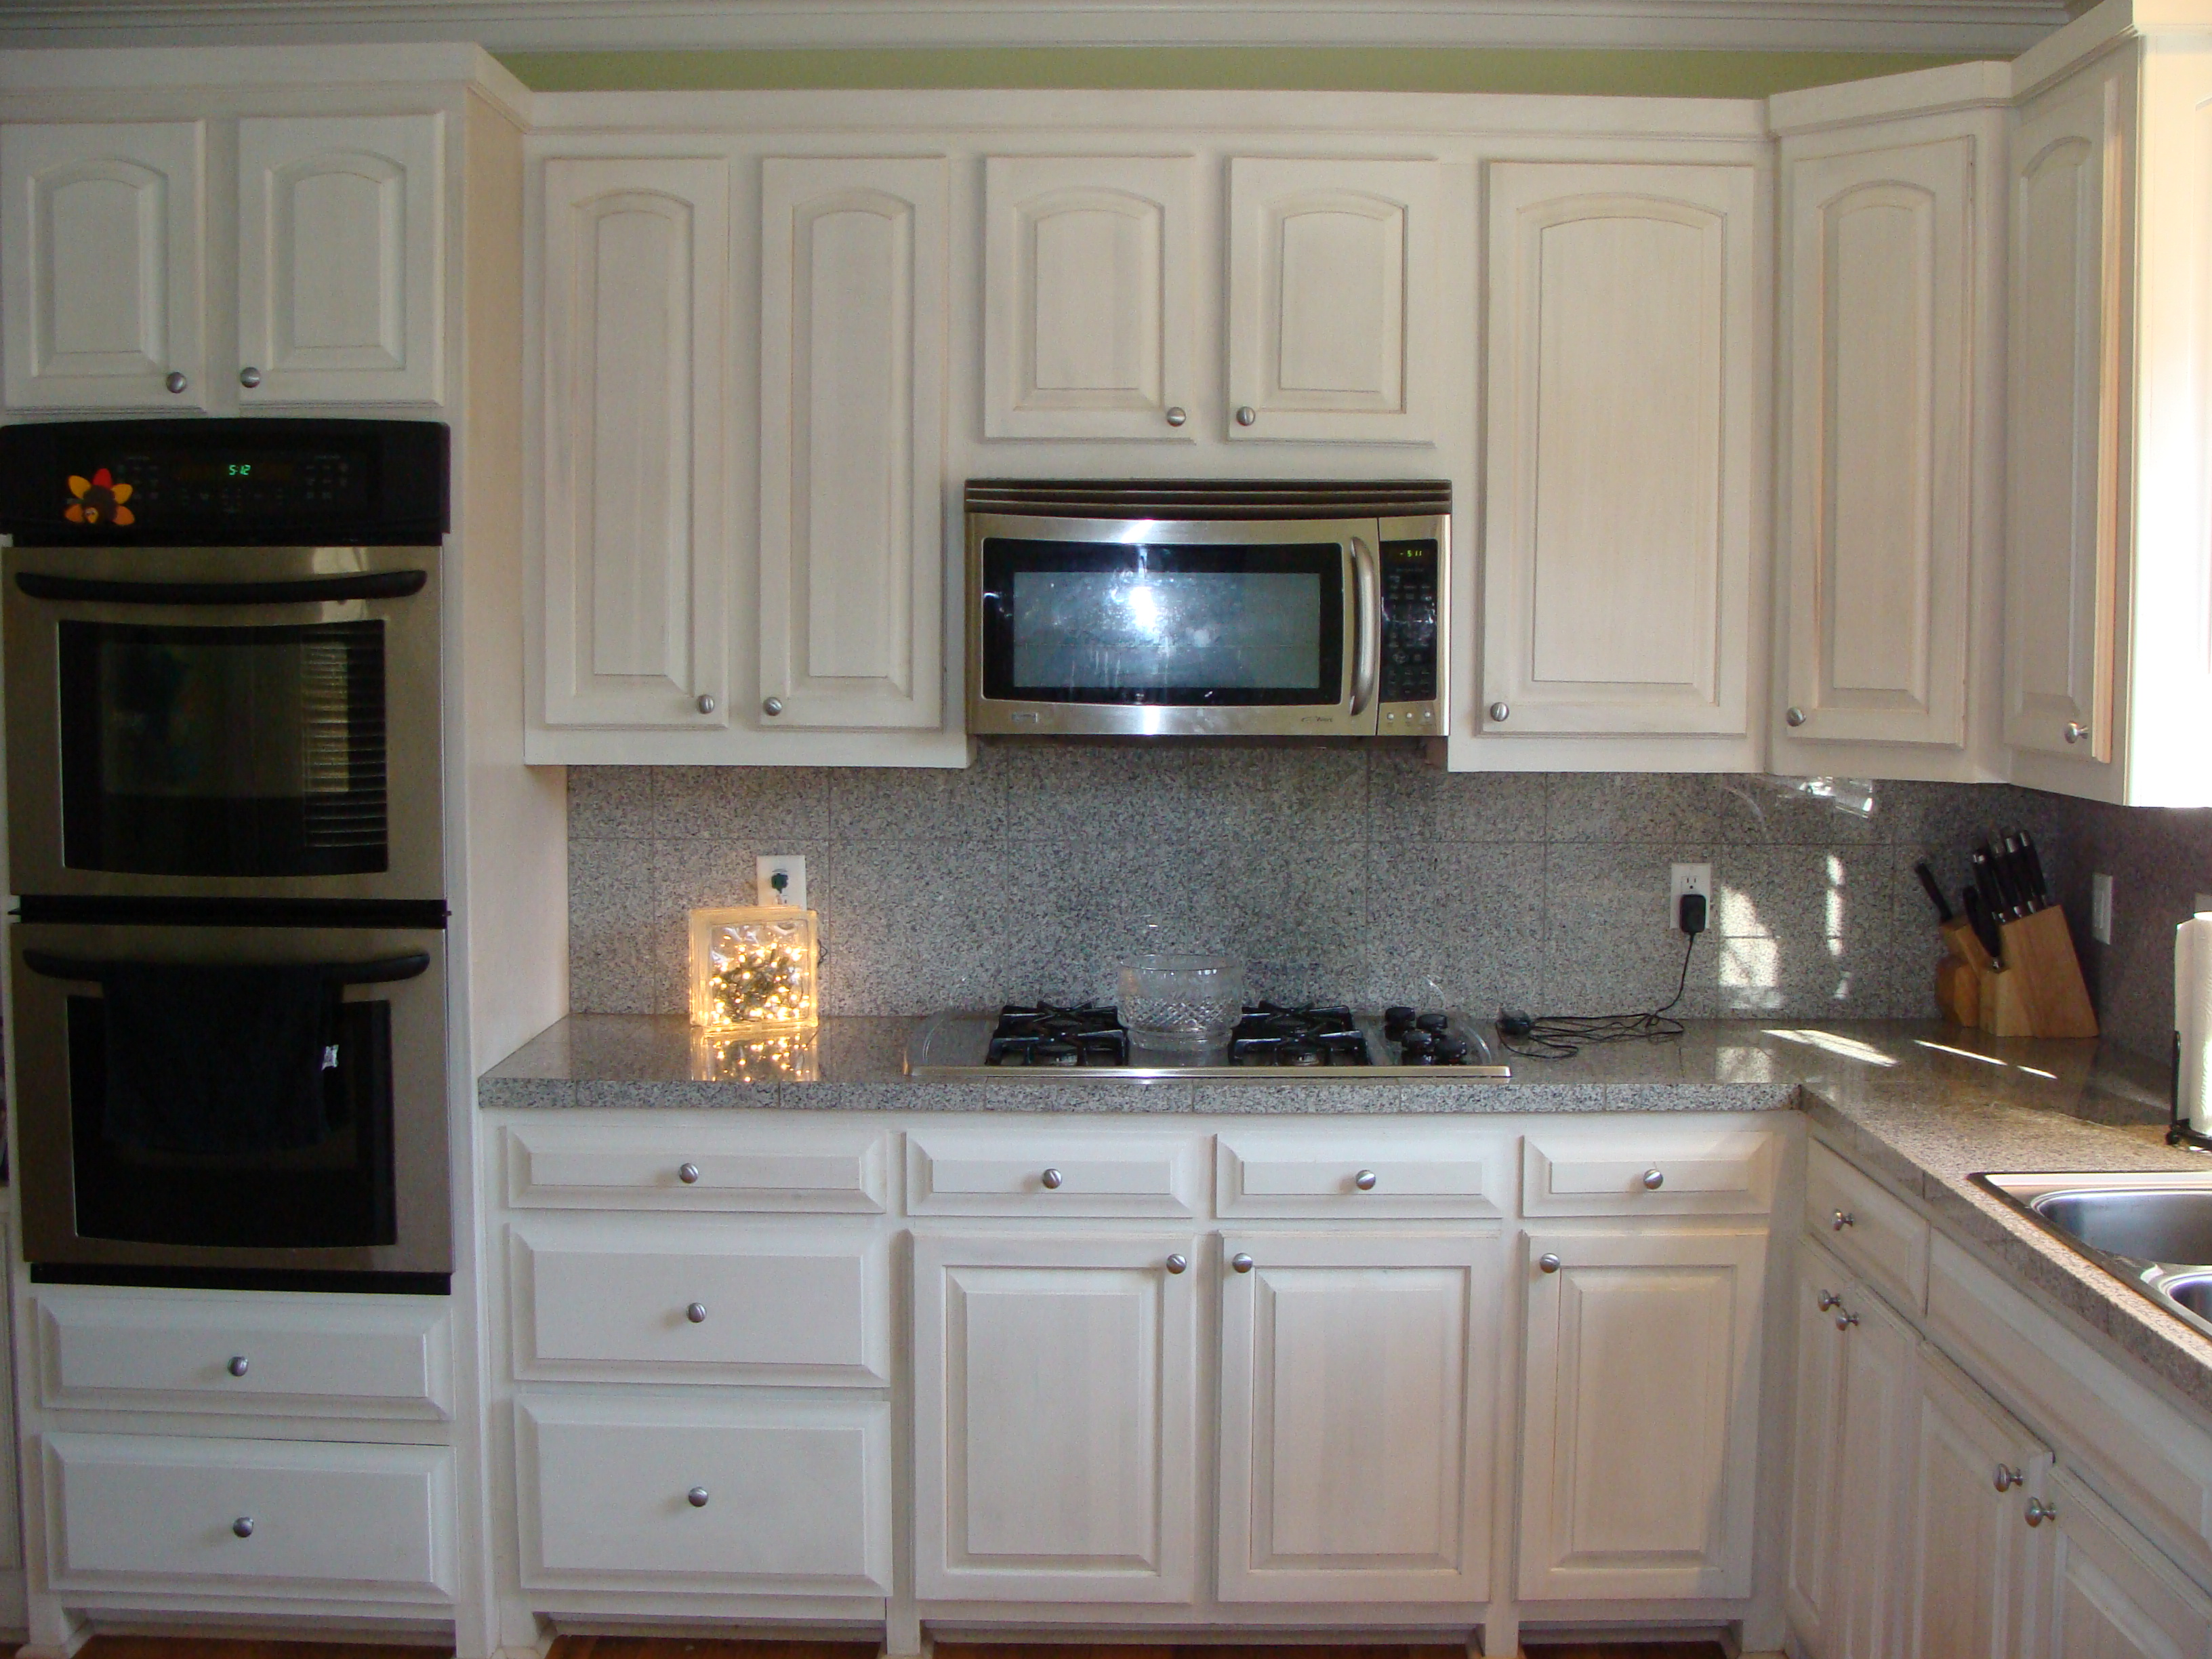 Wonderful Kitchens with White Cabinets 3264 x 2448 · 2107 kB · jpeg